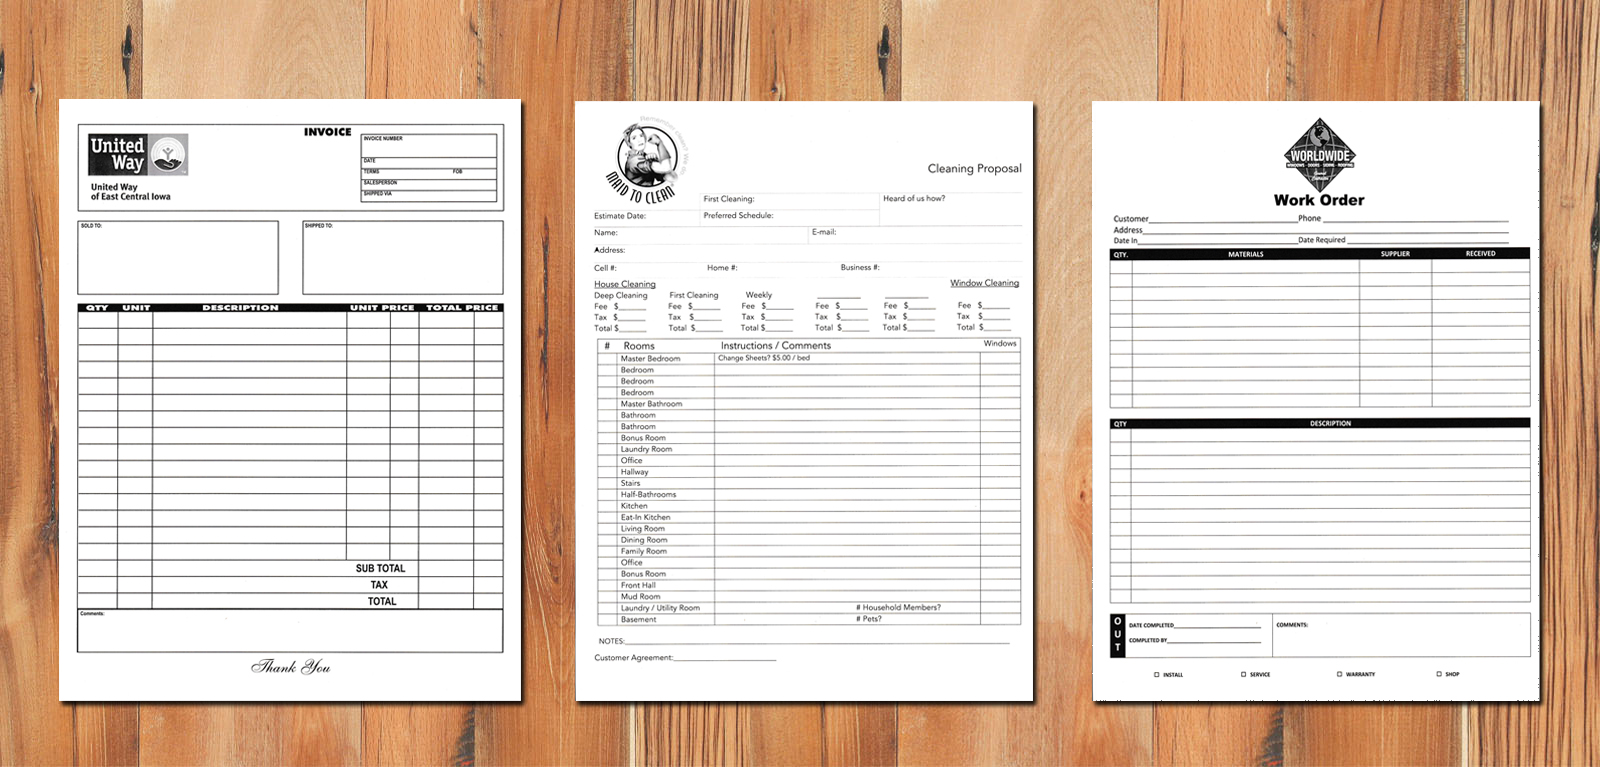 custom carbonless forms, full color carbonless forms, custom printed invoices, custom triplicate forms, custom full color, customer receipt, invoice copy, print forms